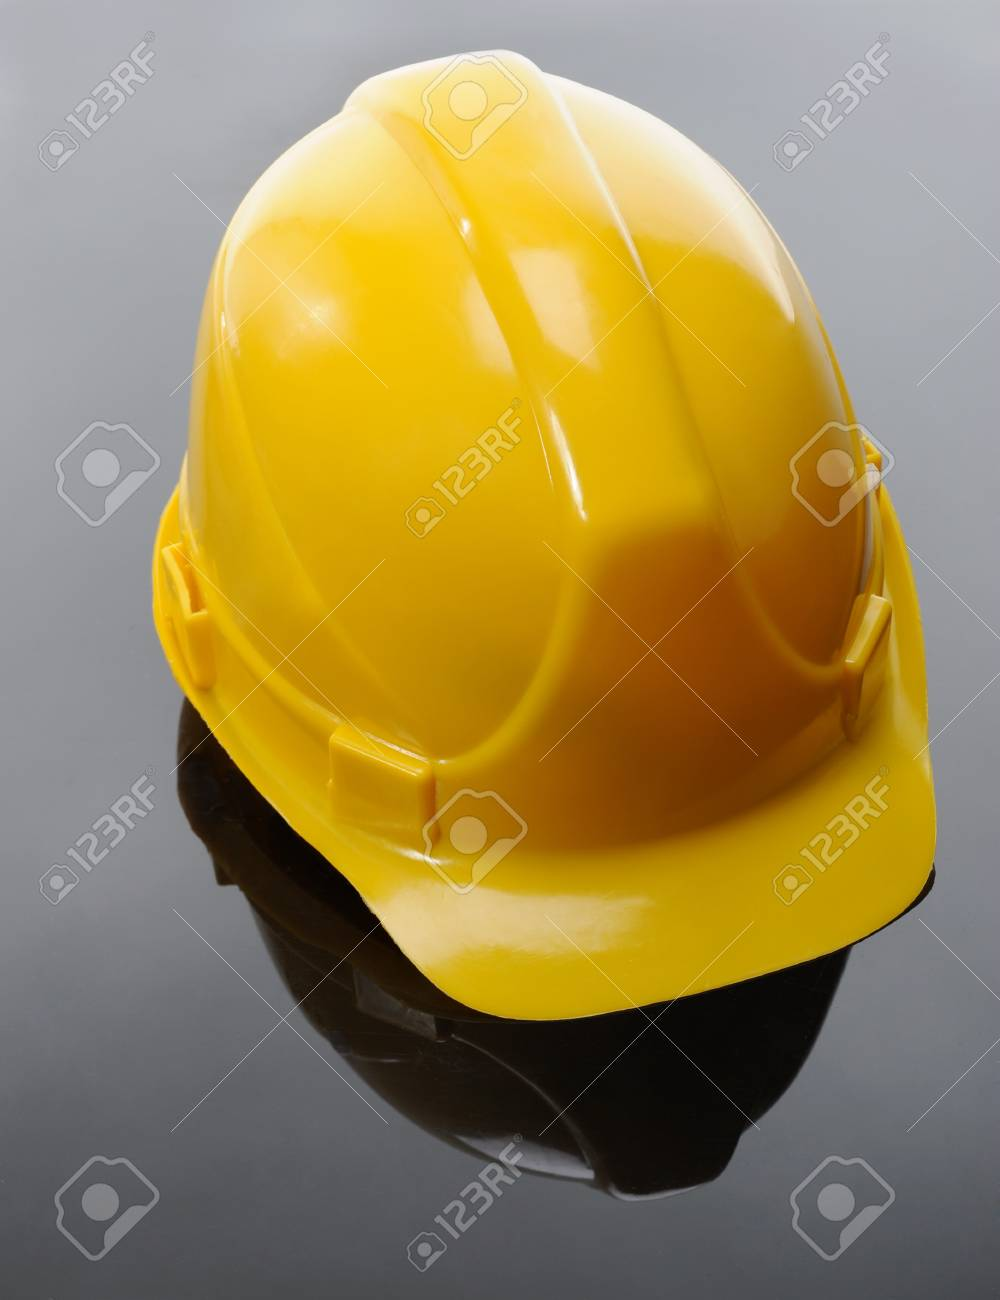 Image of yellow construction helmet on a black background Stock Photo - 8355580